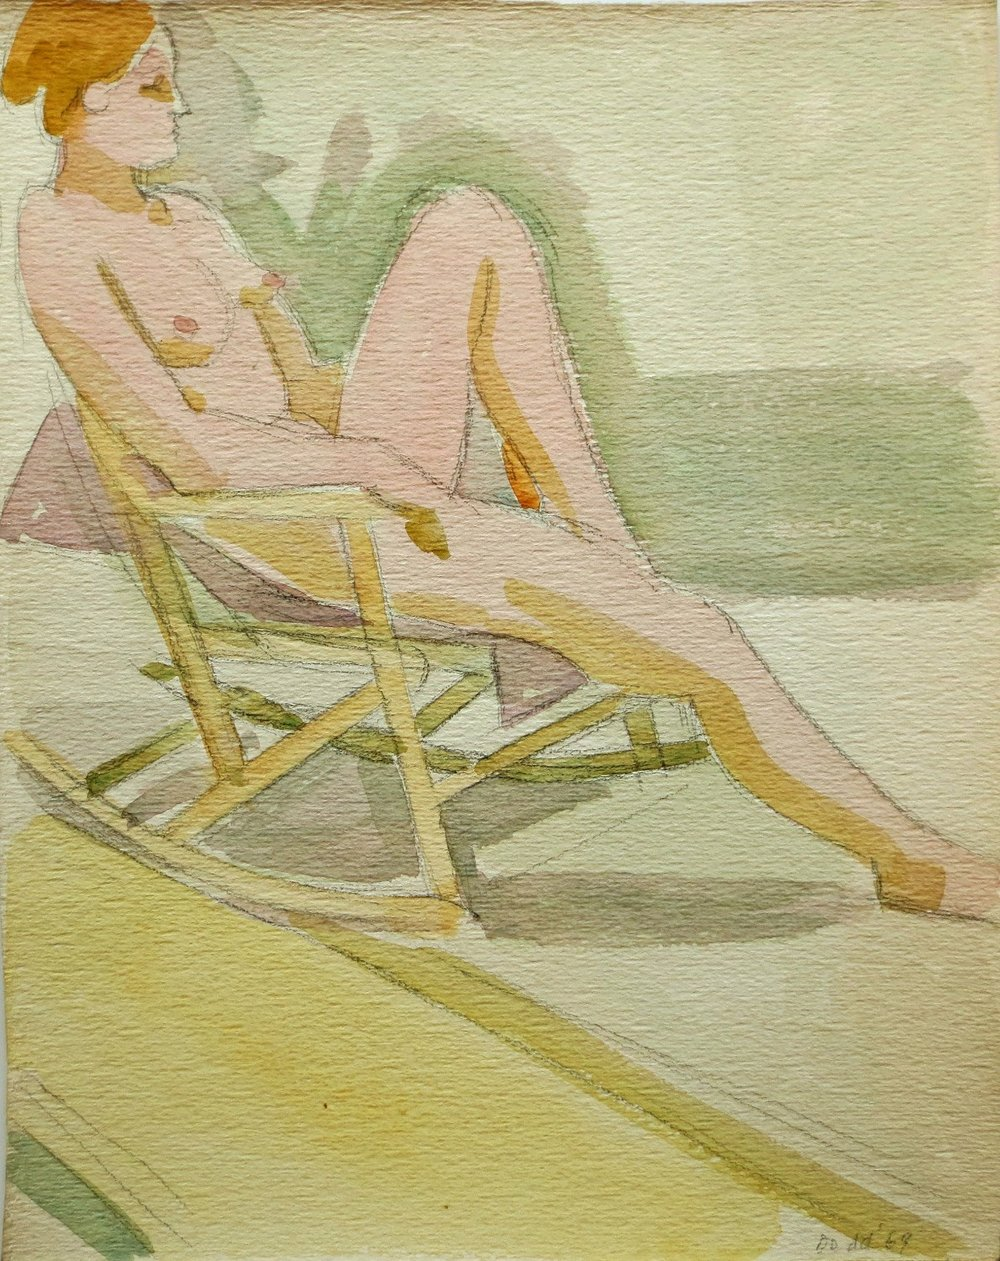 Figure in Rocking Chair